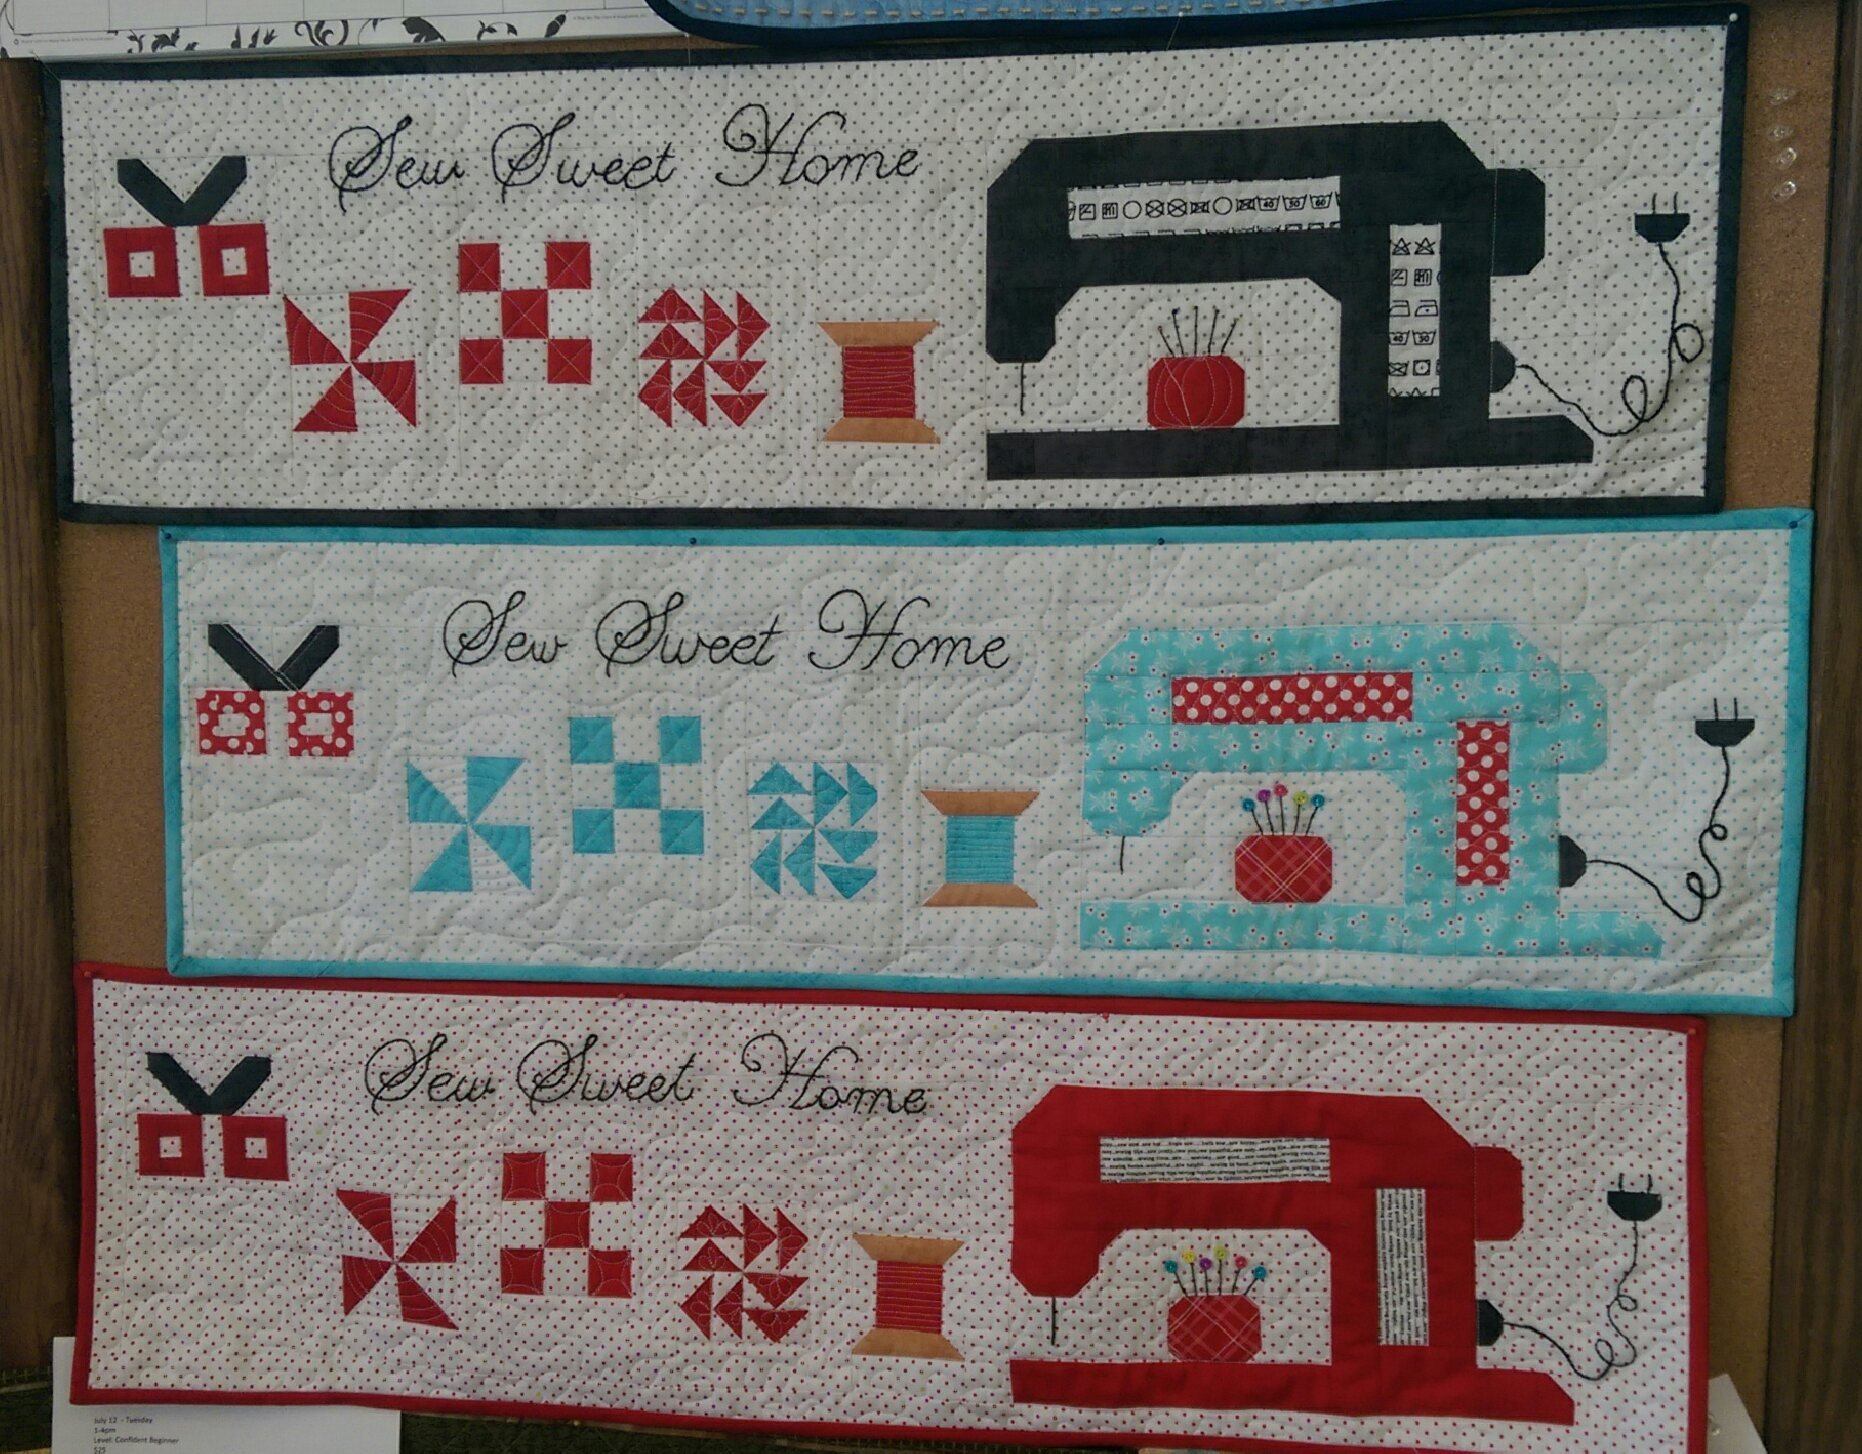 Sew Sweet Home Pattern (2016)